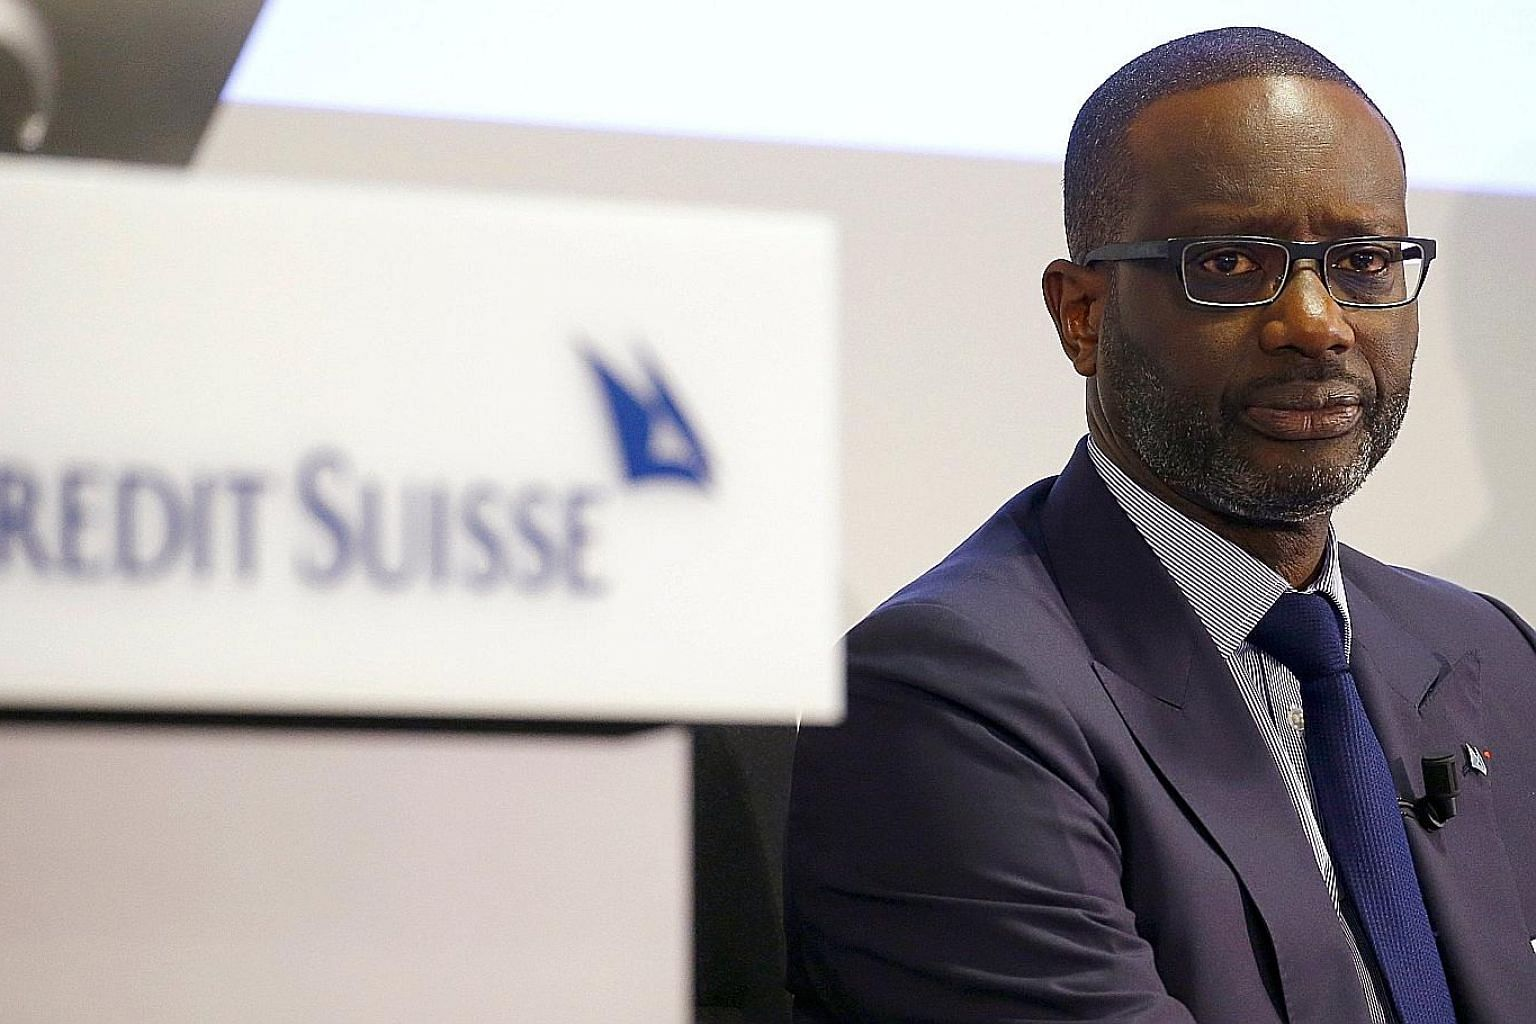 A three-year turnaround plan by Credit Suisse chief executive officer Tidjane Thiam has been dogged by poor performance at its markets operations in Asia.